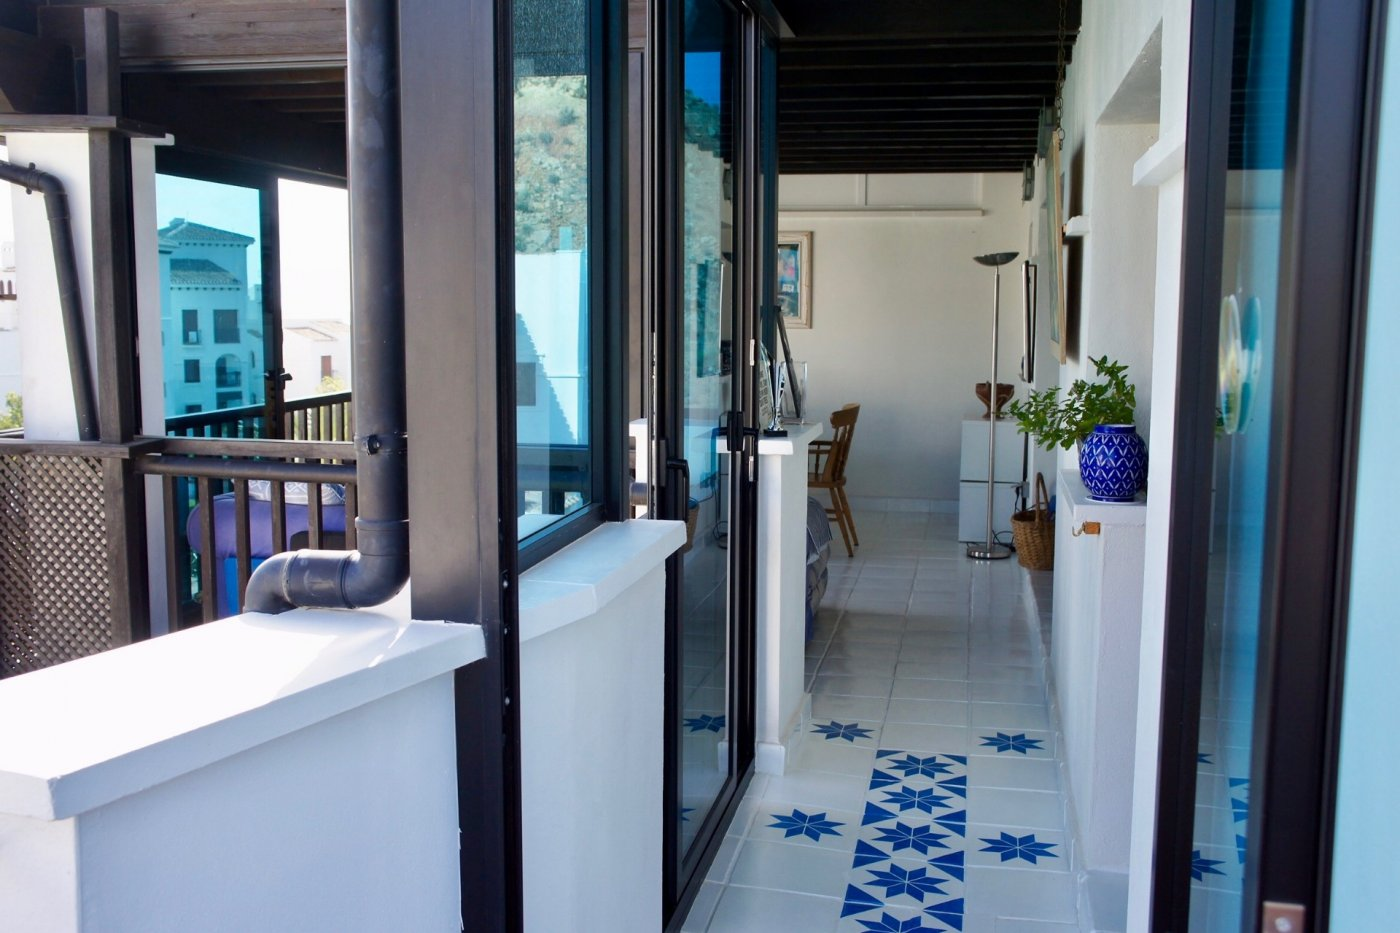 Image 5 Apartment ref 3265-03023 for sale in El Valle Golf Resort Spain - Quality Homes Costa Cálida